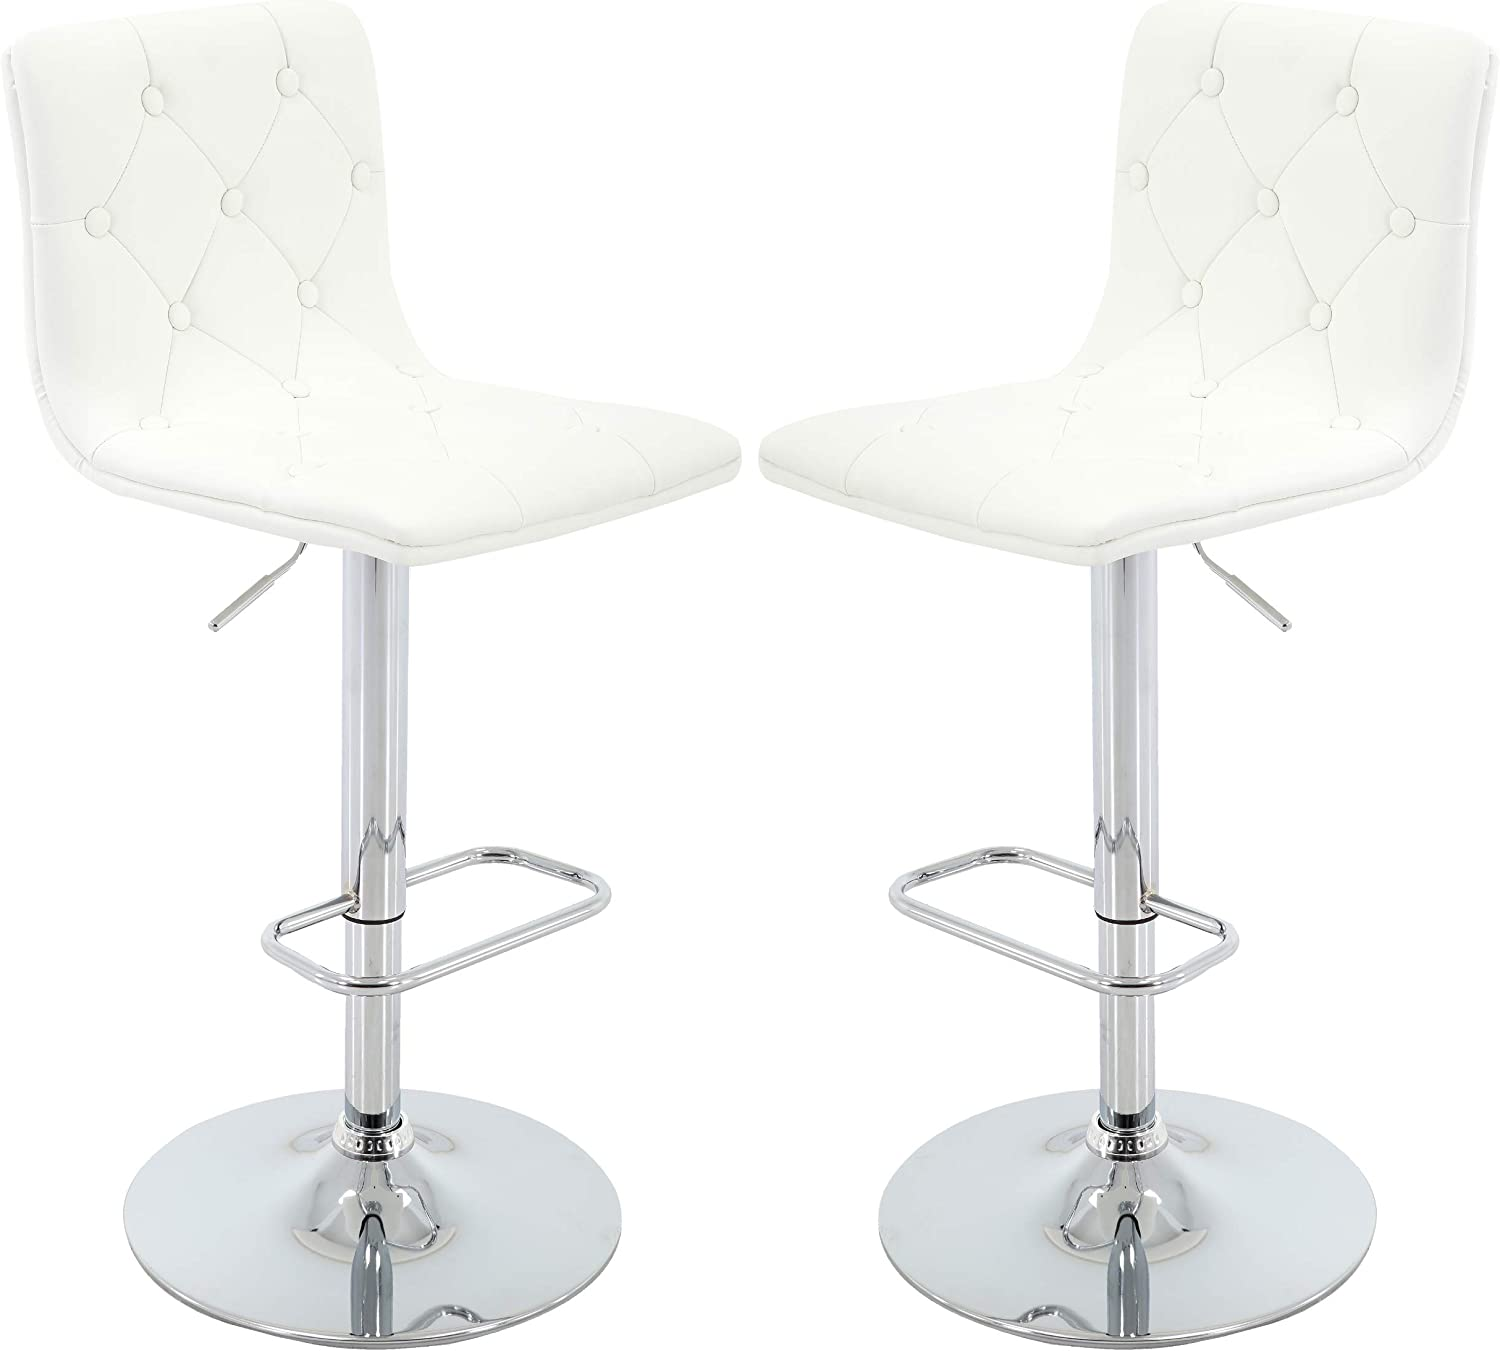 Brage Living Tufted PU Leather Adjustable Height Barstool with Chrome Base and Footrest Set of 2 White